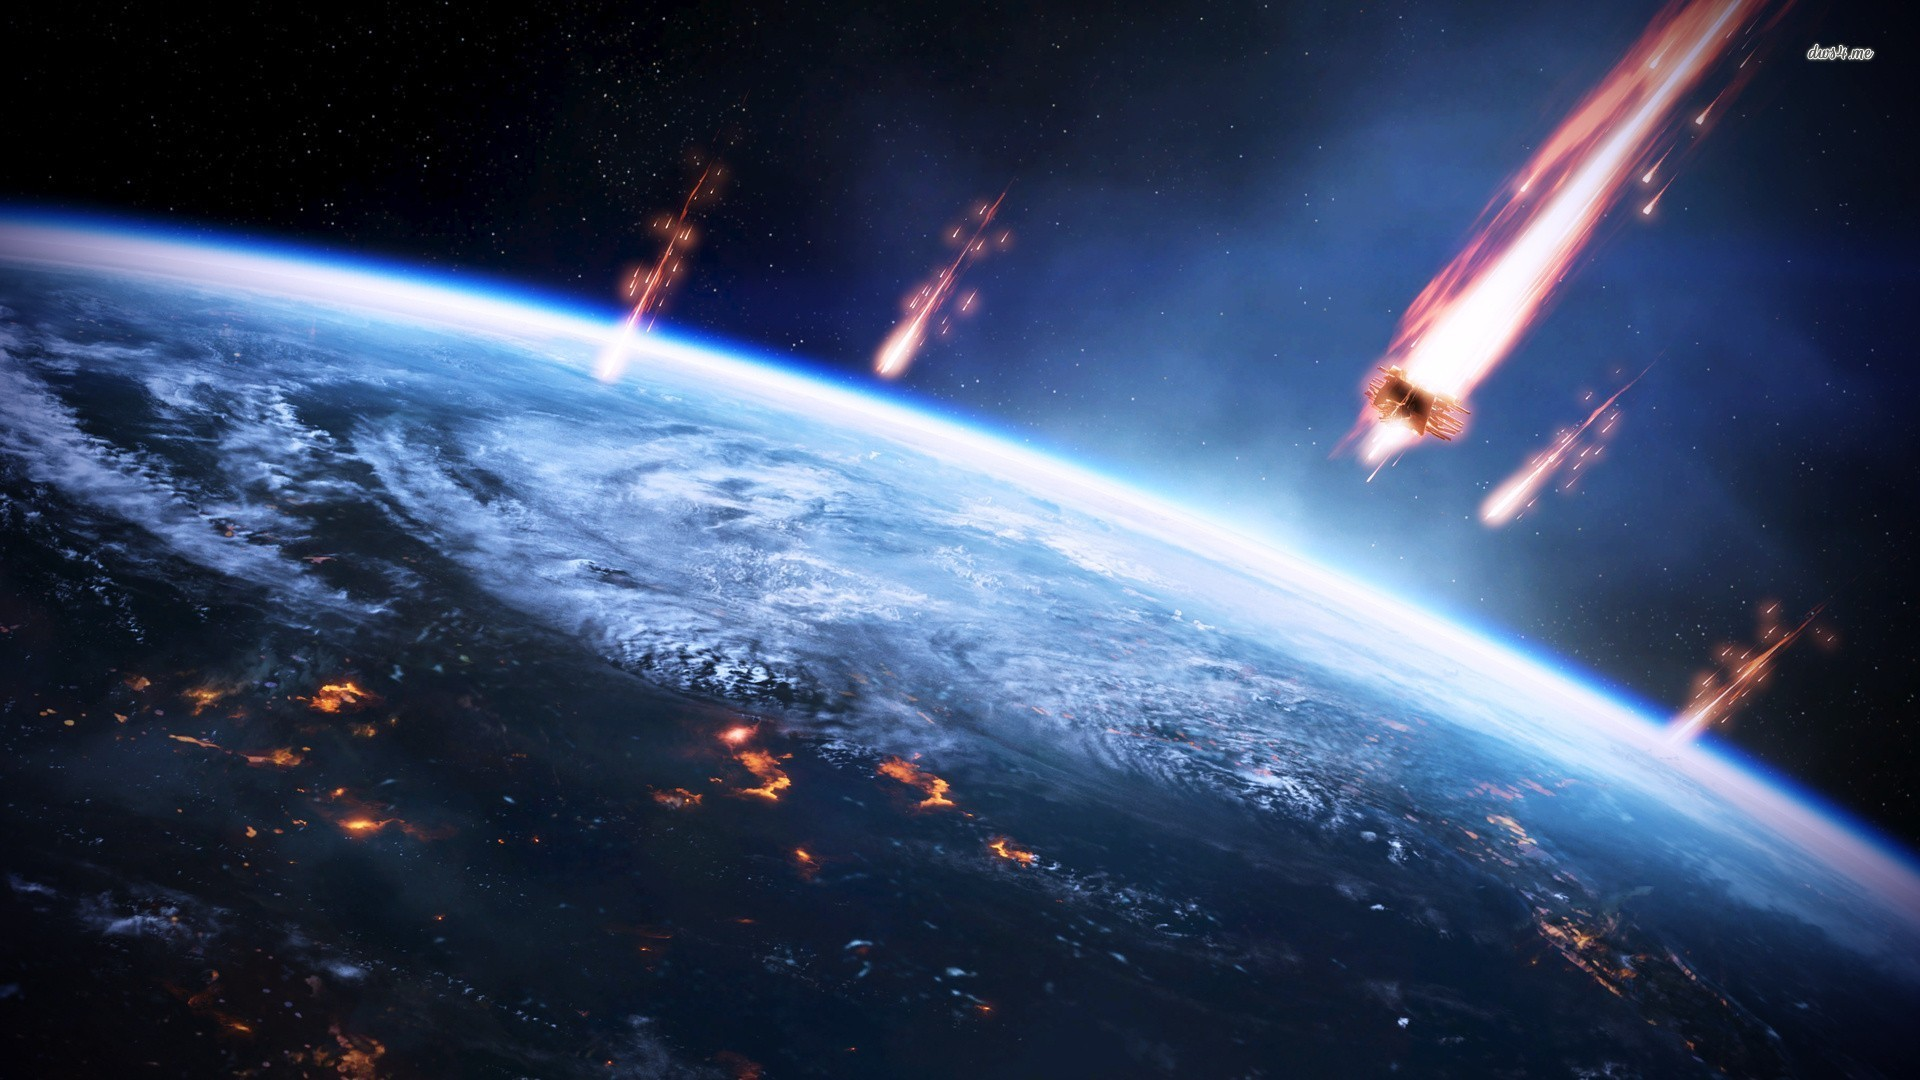 Meteorite crashes into Earth wallpapers